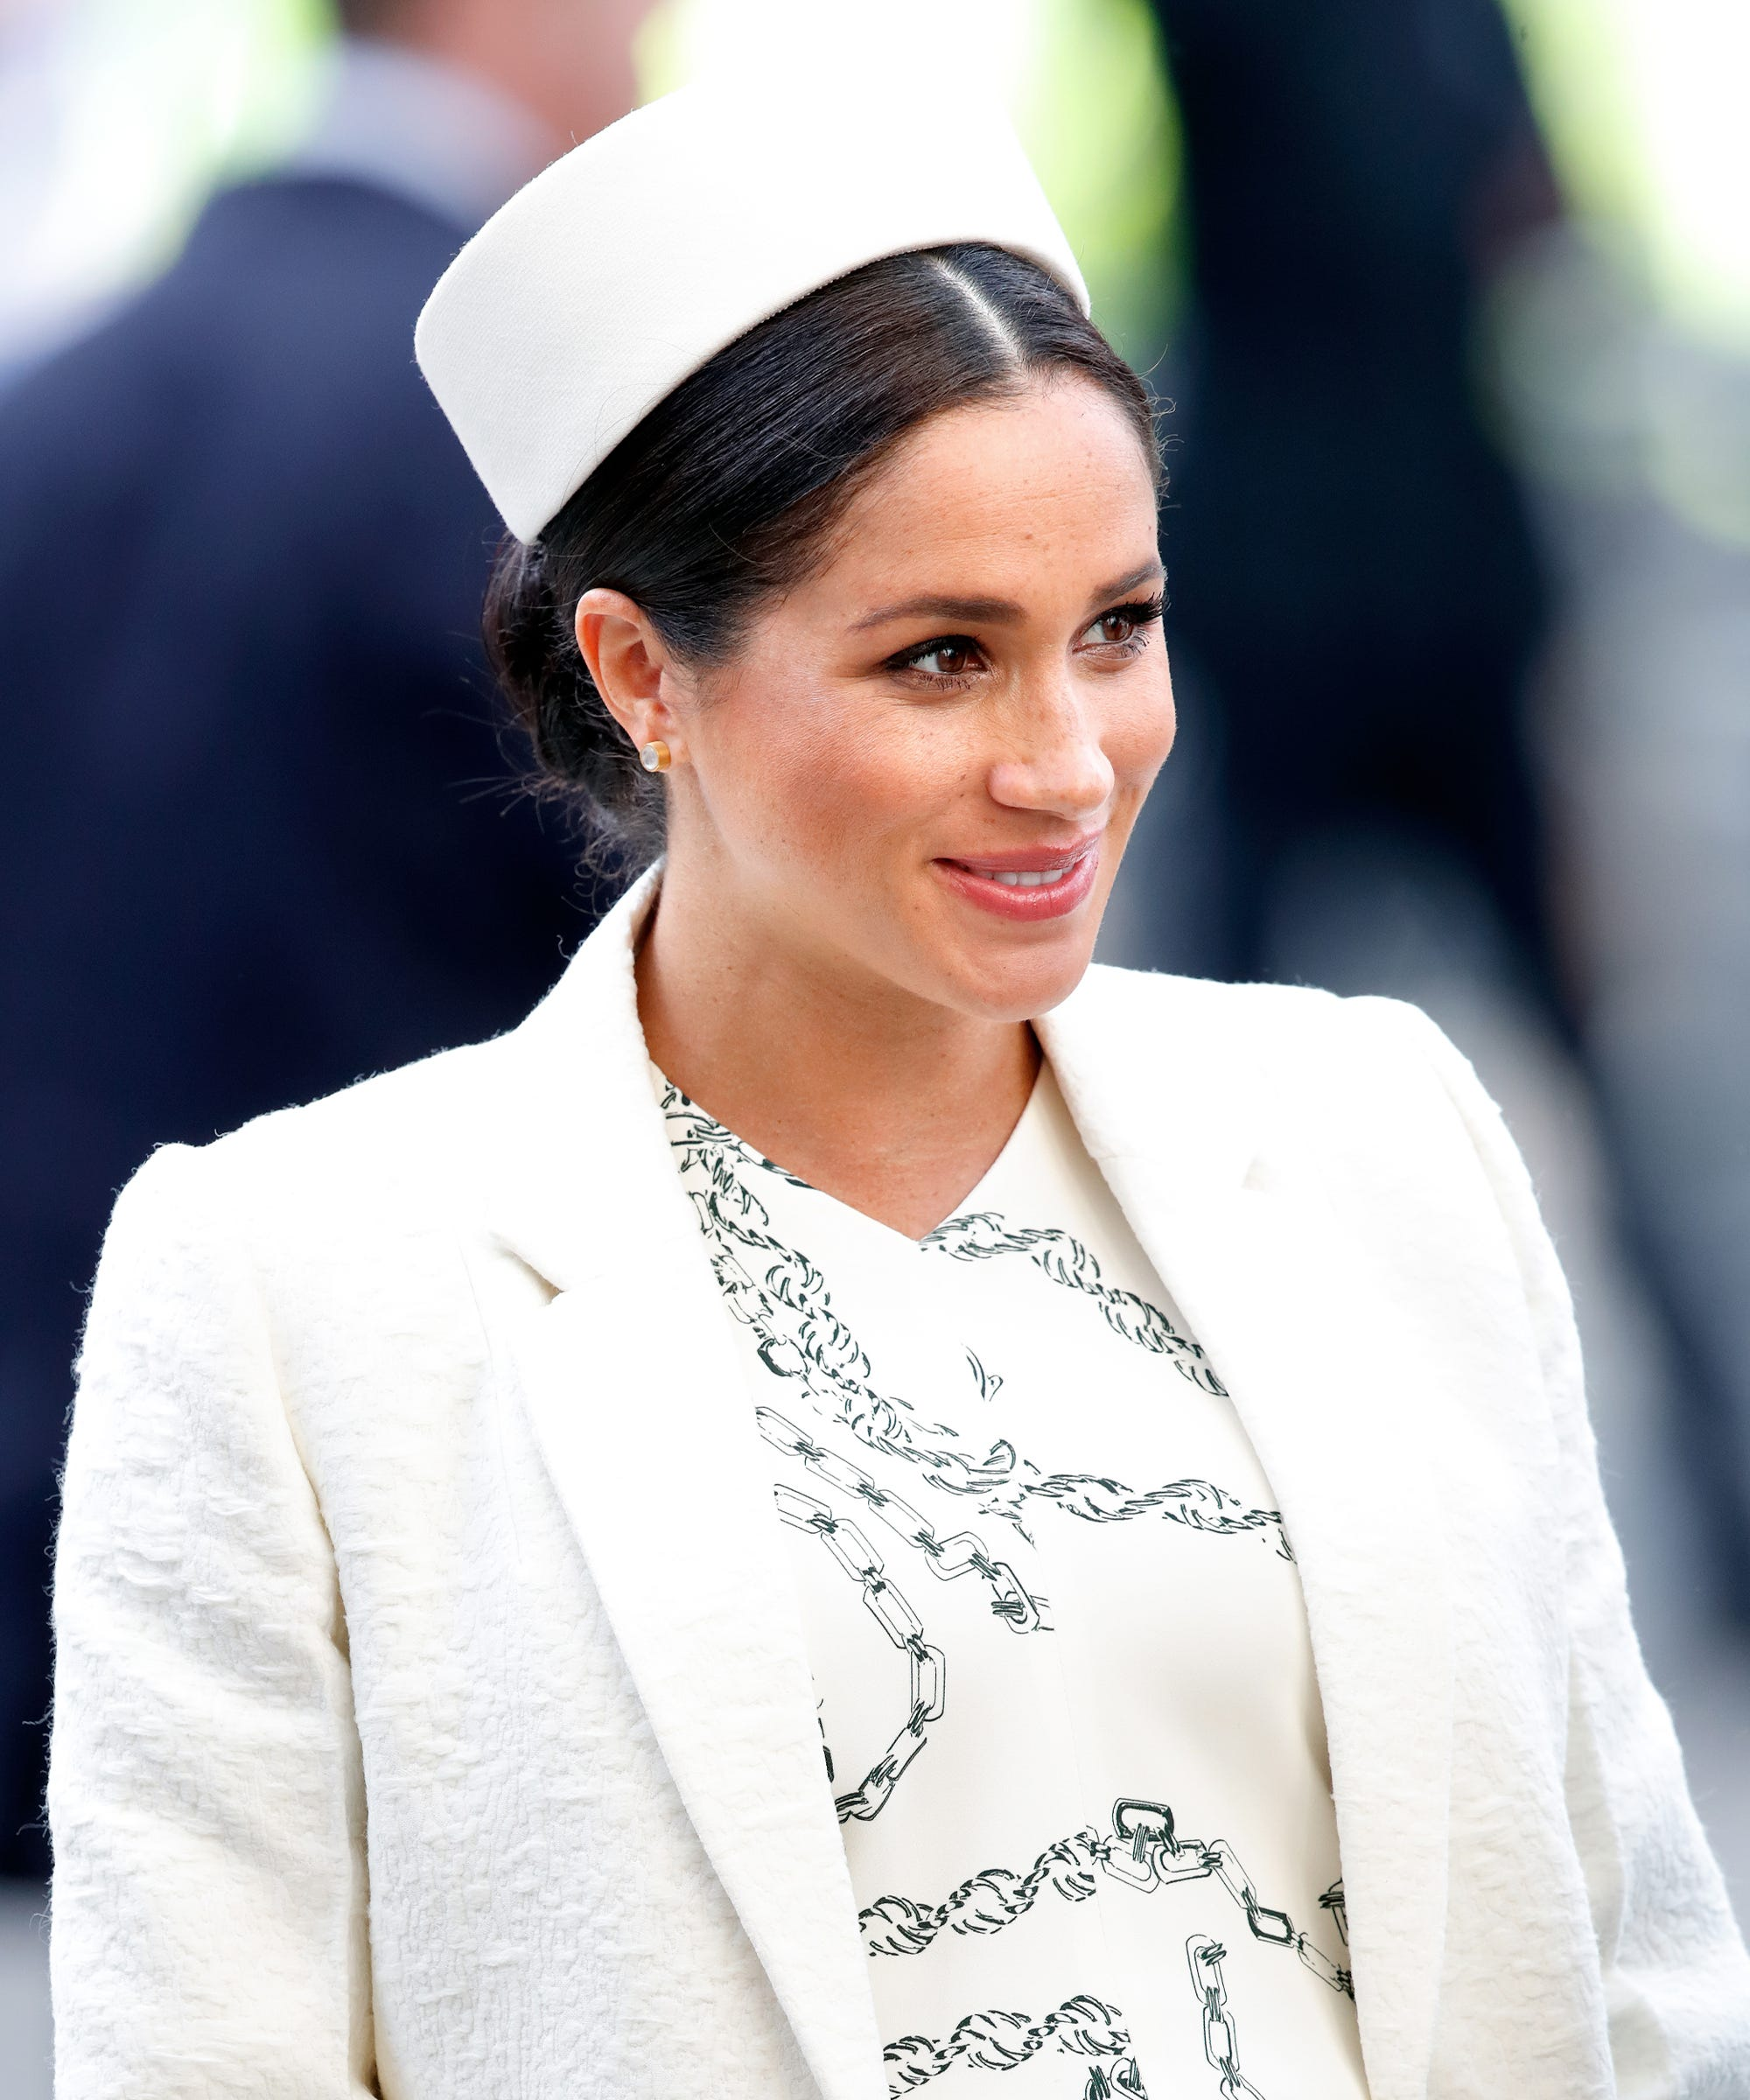 Flipboard: Fashion Special! Meghan Markle's Maternity Wardrobe